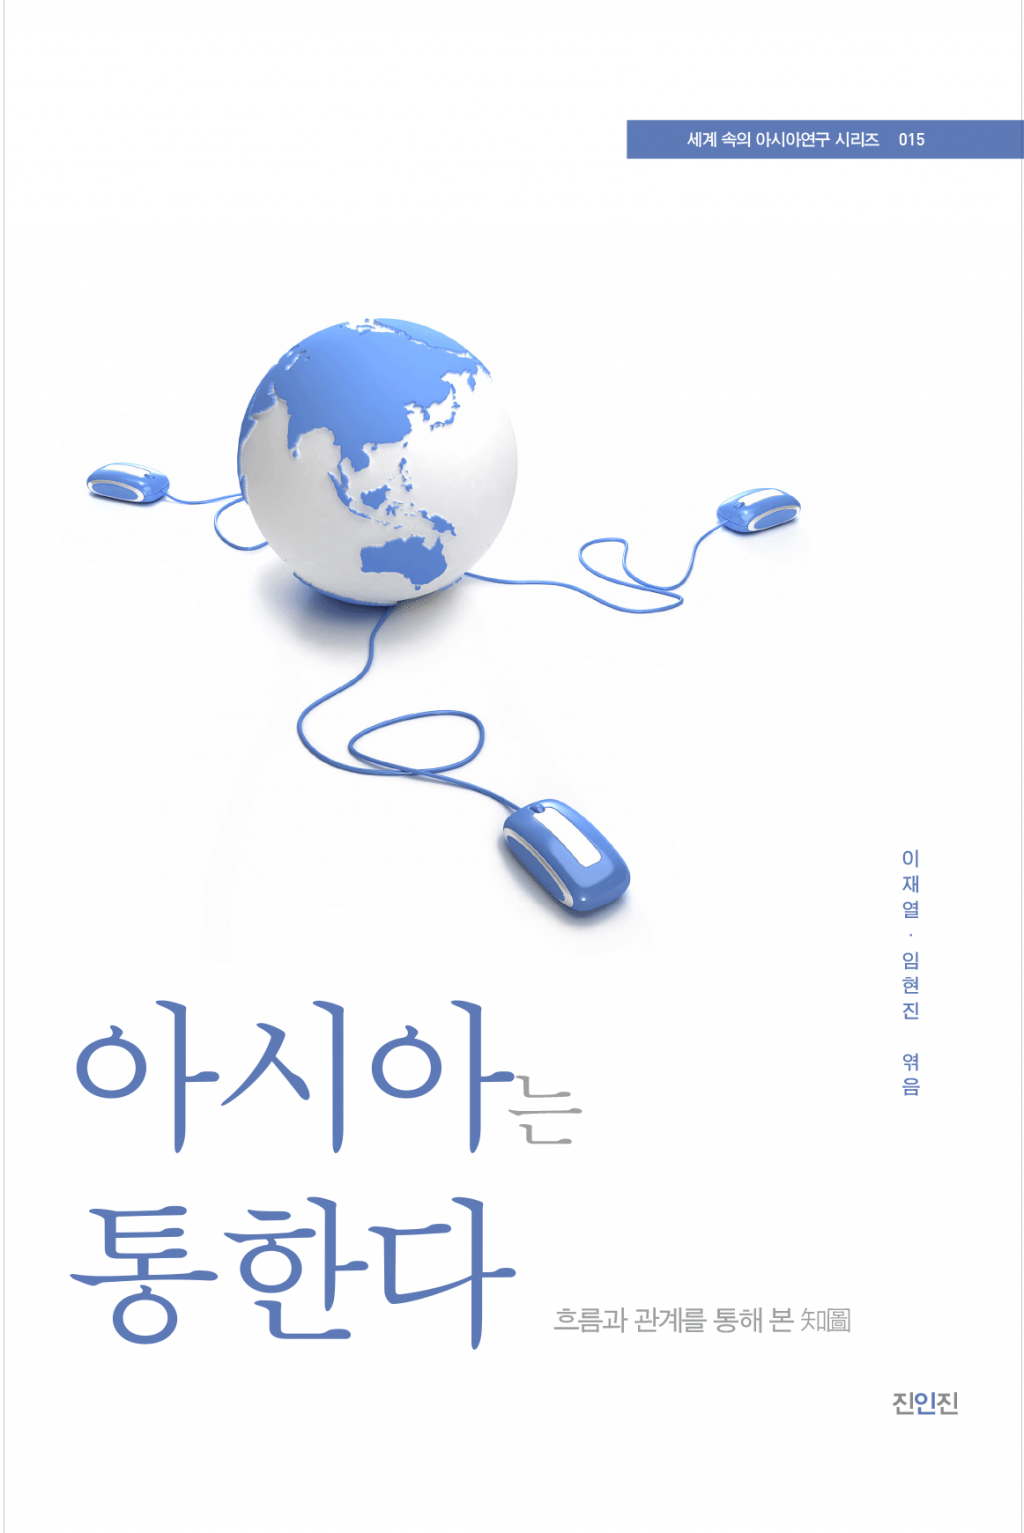 Connected Asia: An Intellectual Map of Flows and Relations